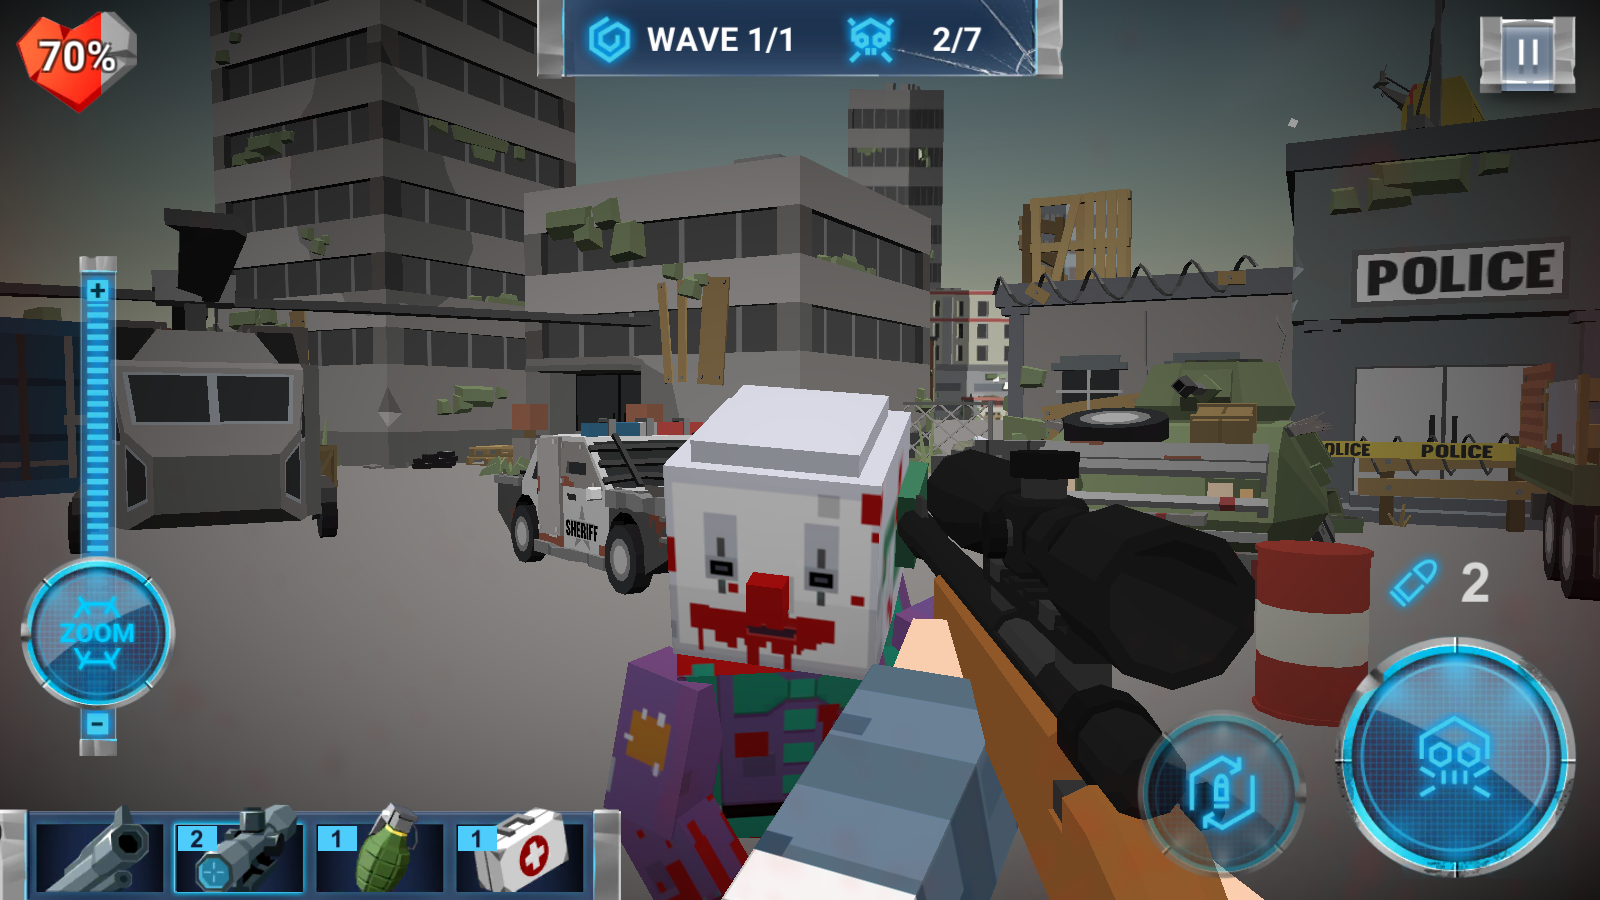 The walking zombie: Dead city Screenshot 5